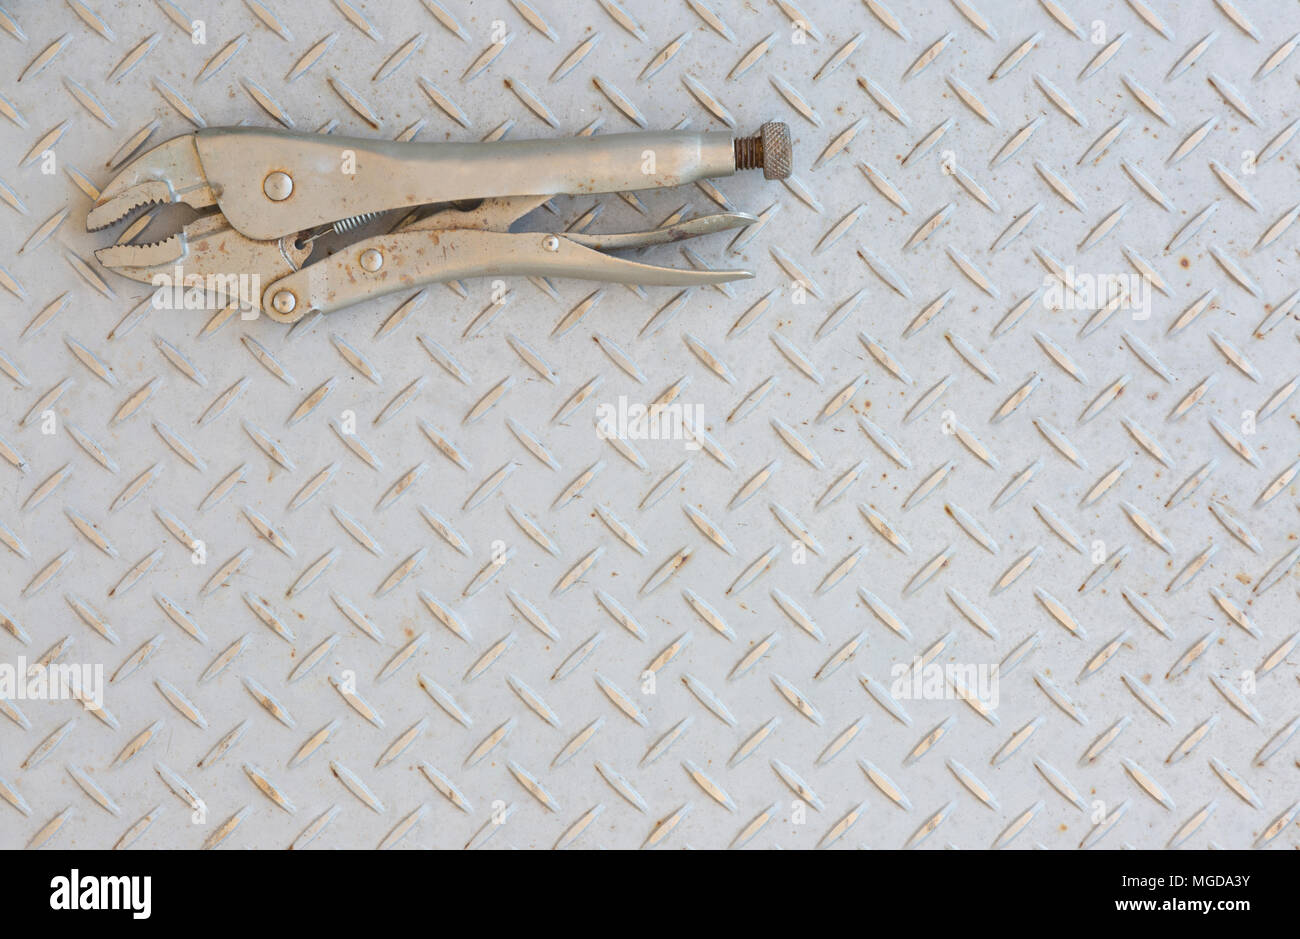 Vise grips or Vice grips on a checker plate floor. - Stock Image